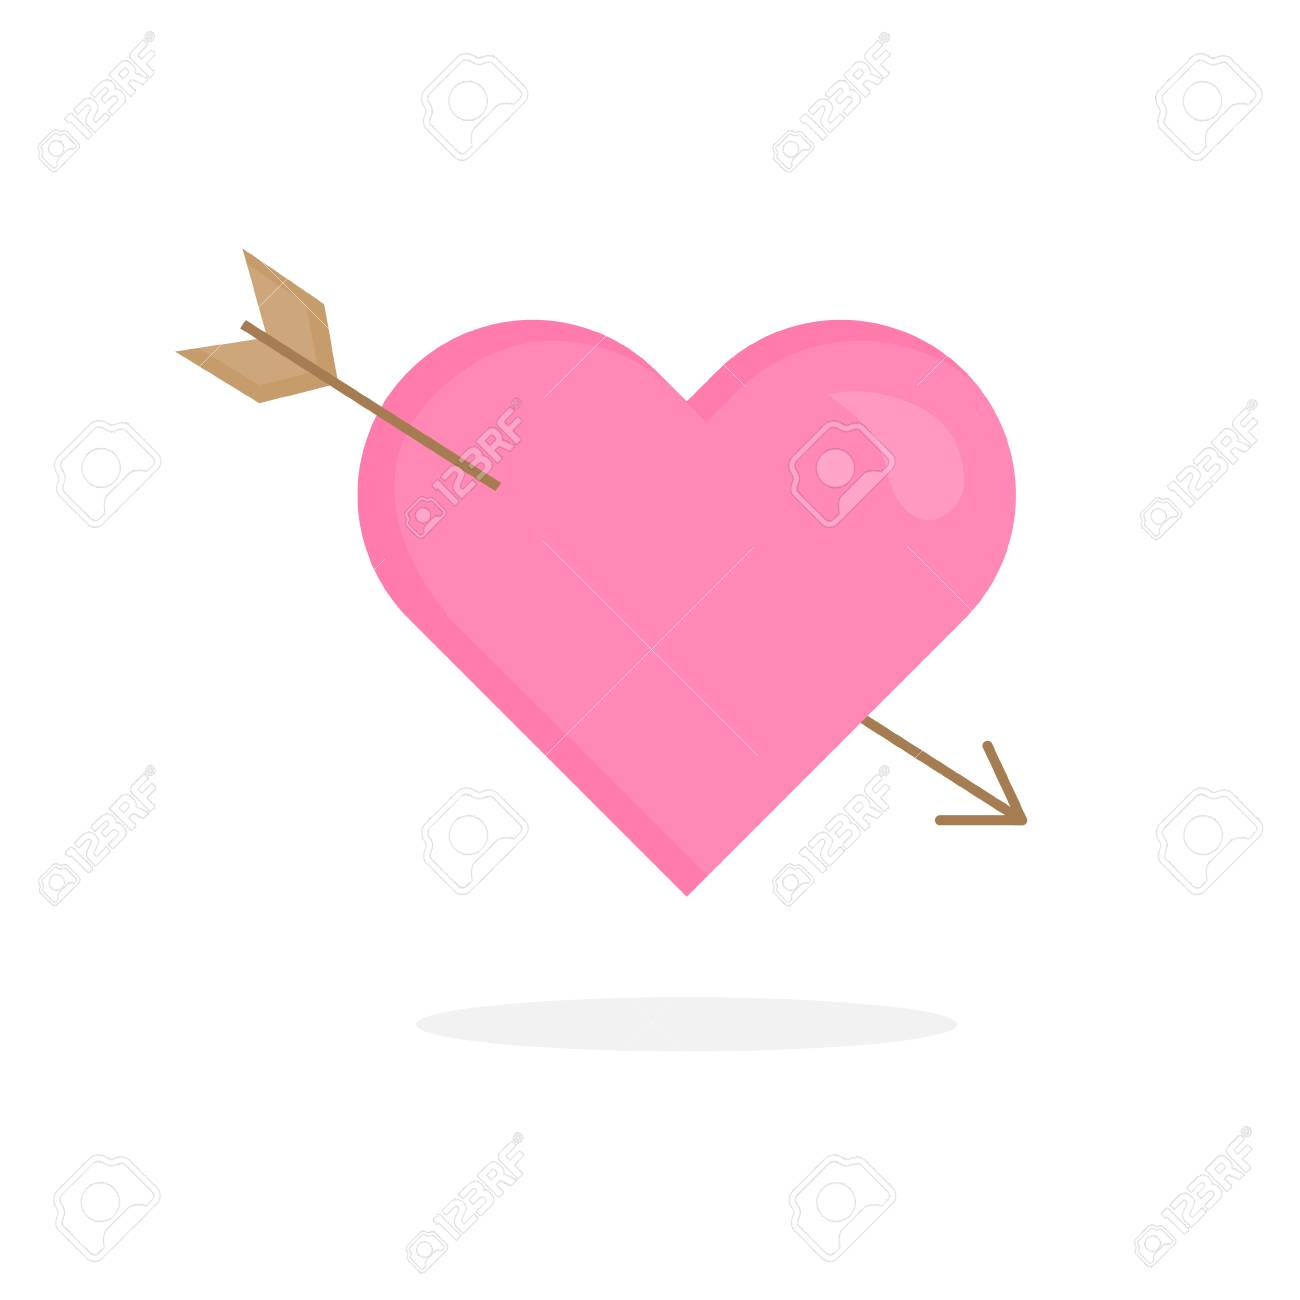 Simple Valentine's Day cupid heart vector icon. Pink heart with wood arrow. In love amor heart graphic illustration with shadow, isolated. - 121669042